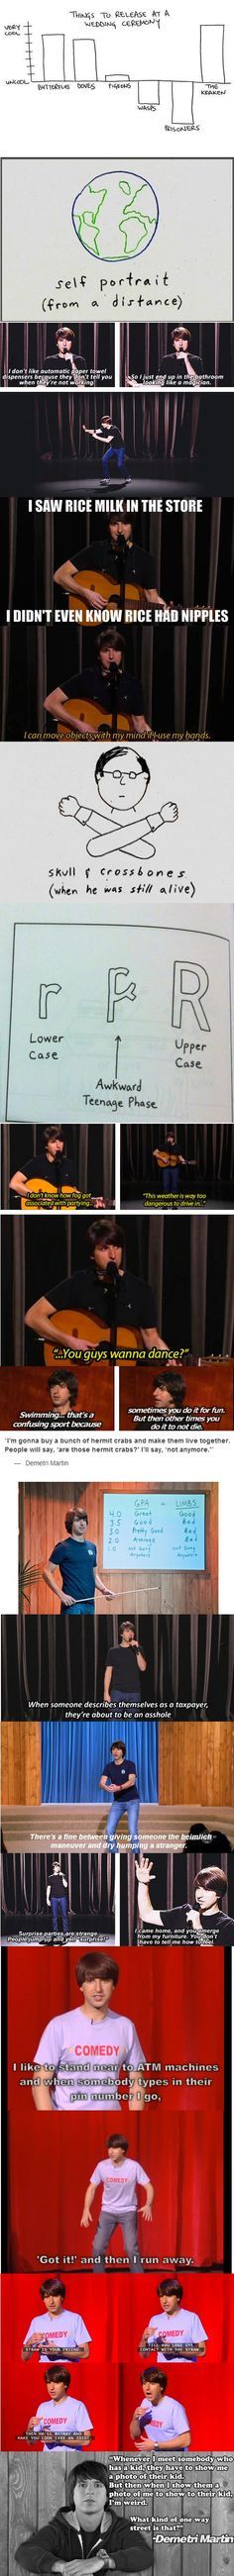 Demetri Martin. So good!